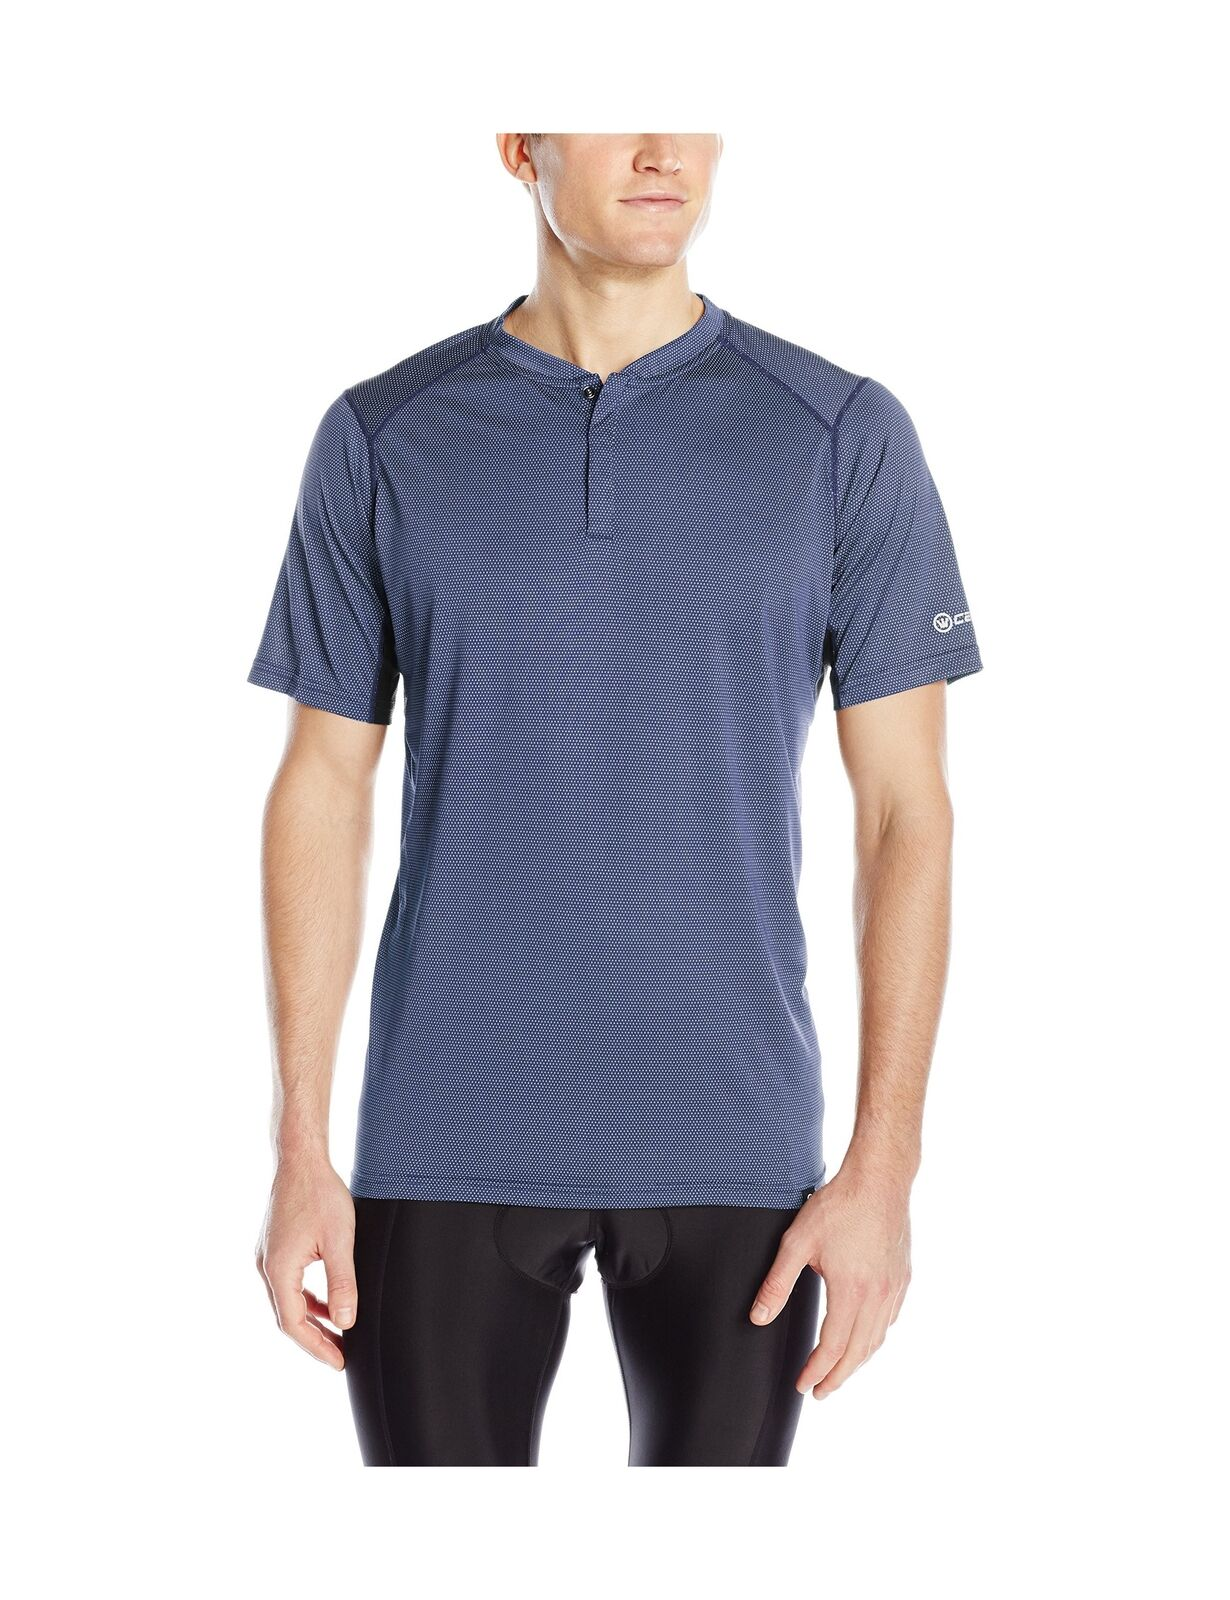 Canari Men's  Bernie's Jersey Twilight bluee X-Large  to provide you with a pleasant online shopping